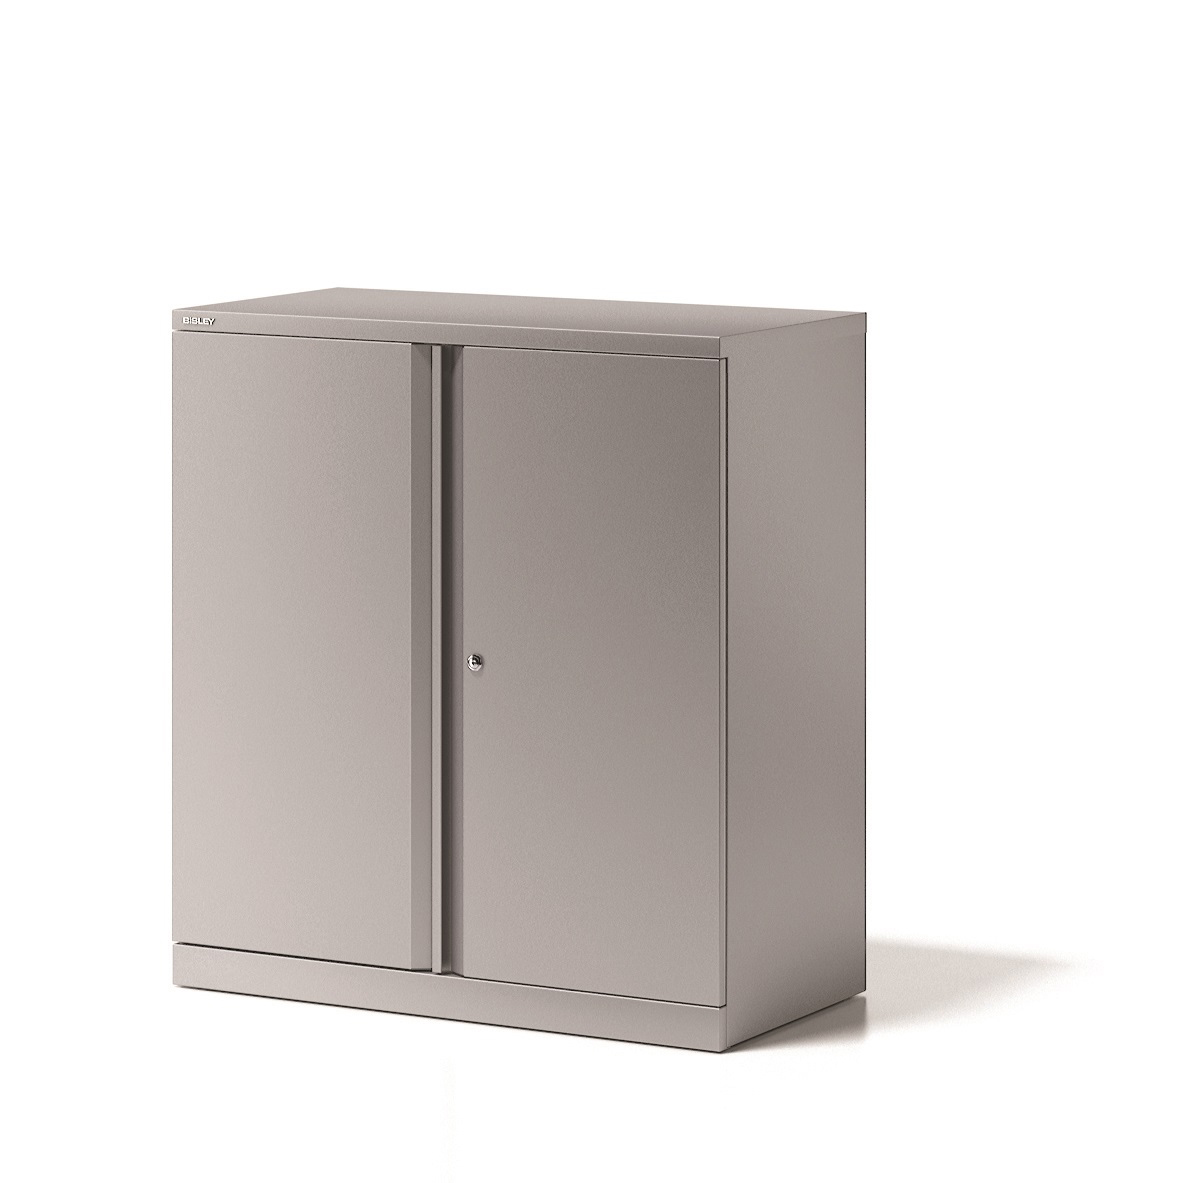 Up to 1200mm High Bisley Two Door Steel Storage Cupboard 914x470x1000-1015mm Grey Ref YECB0910/1S